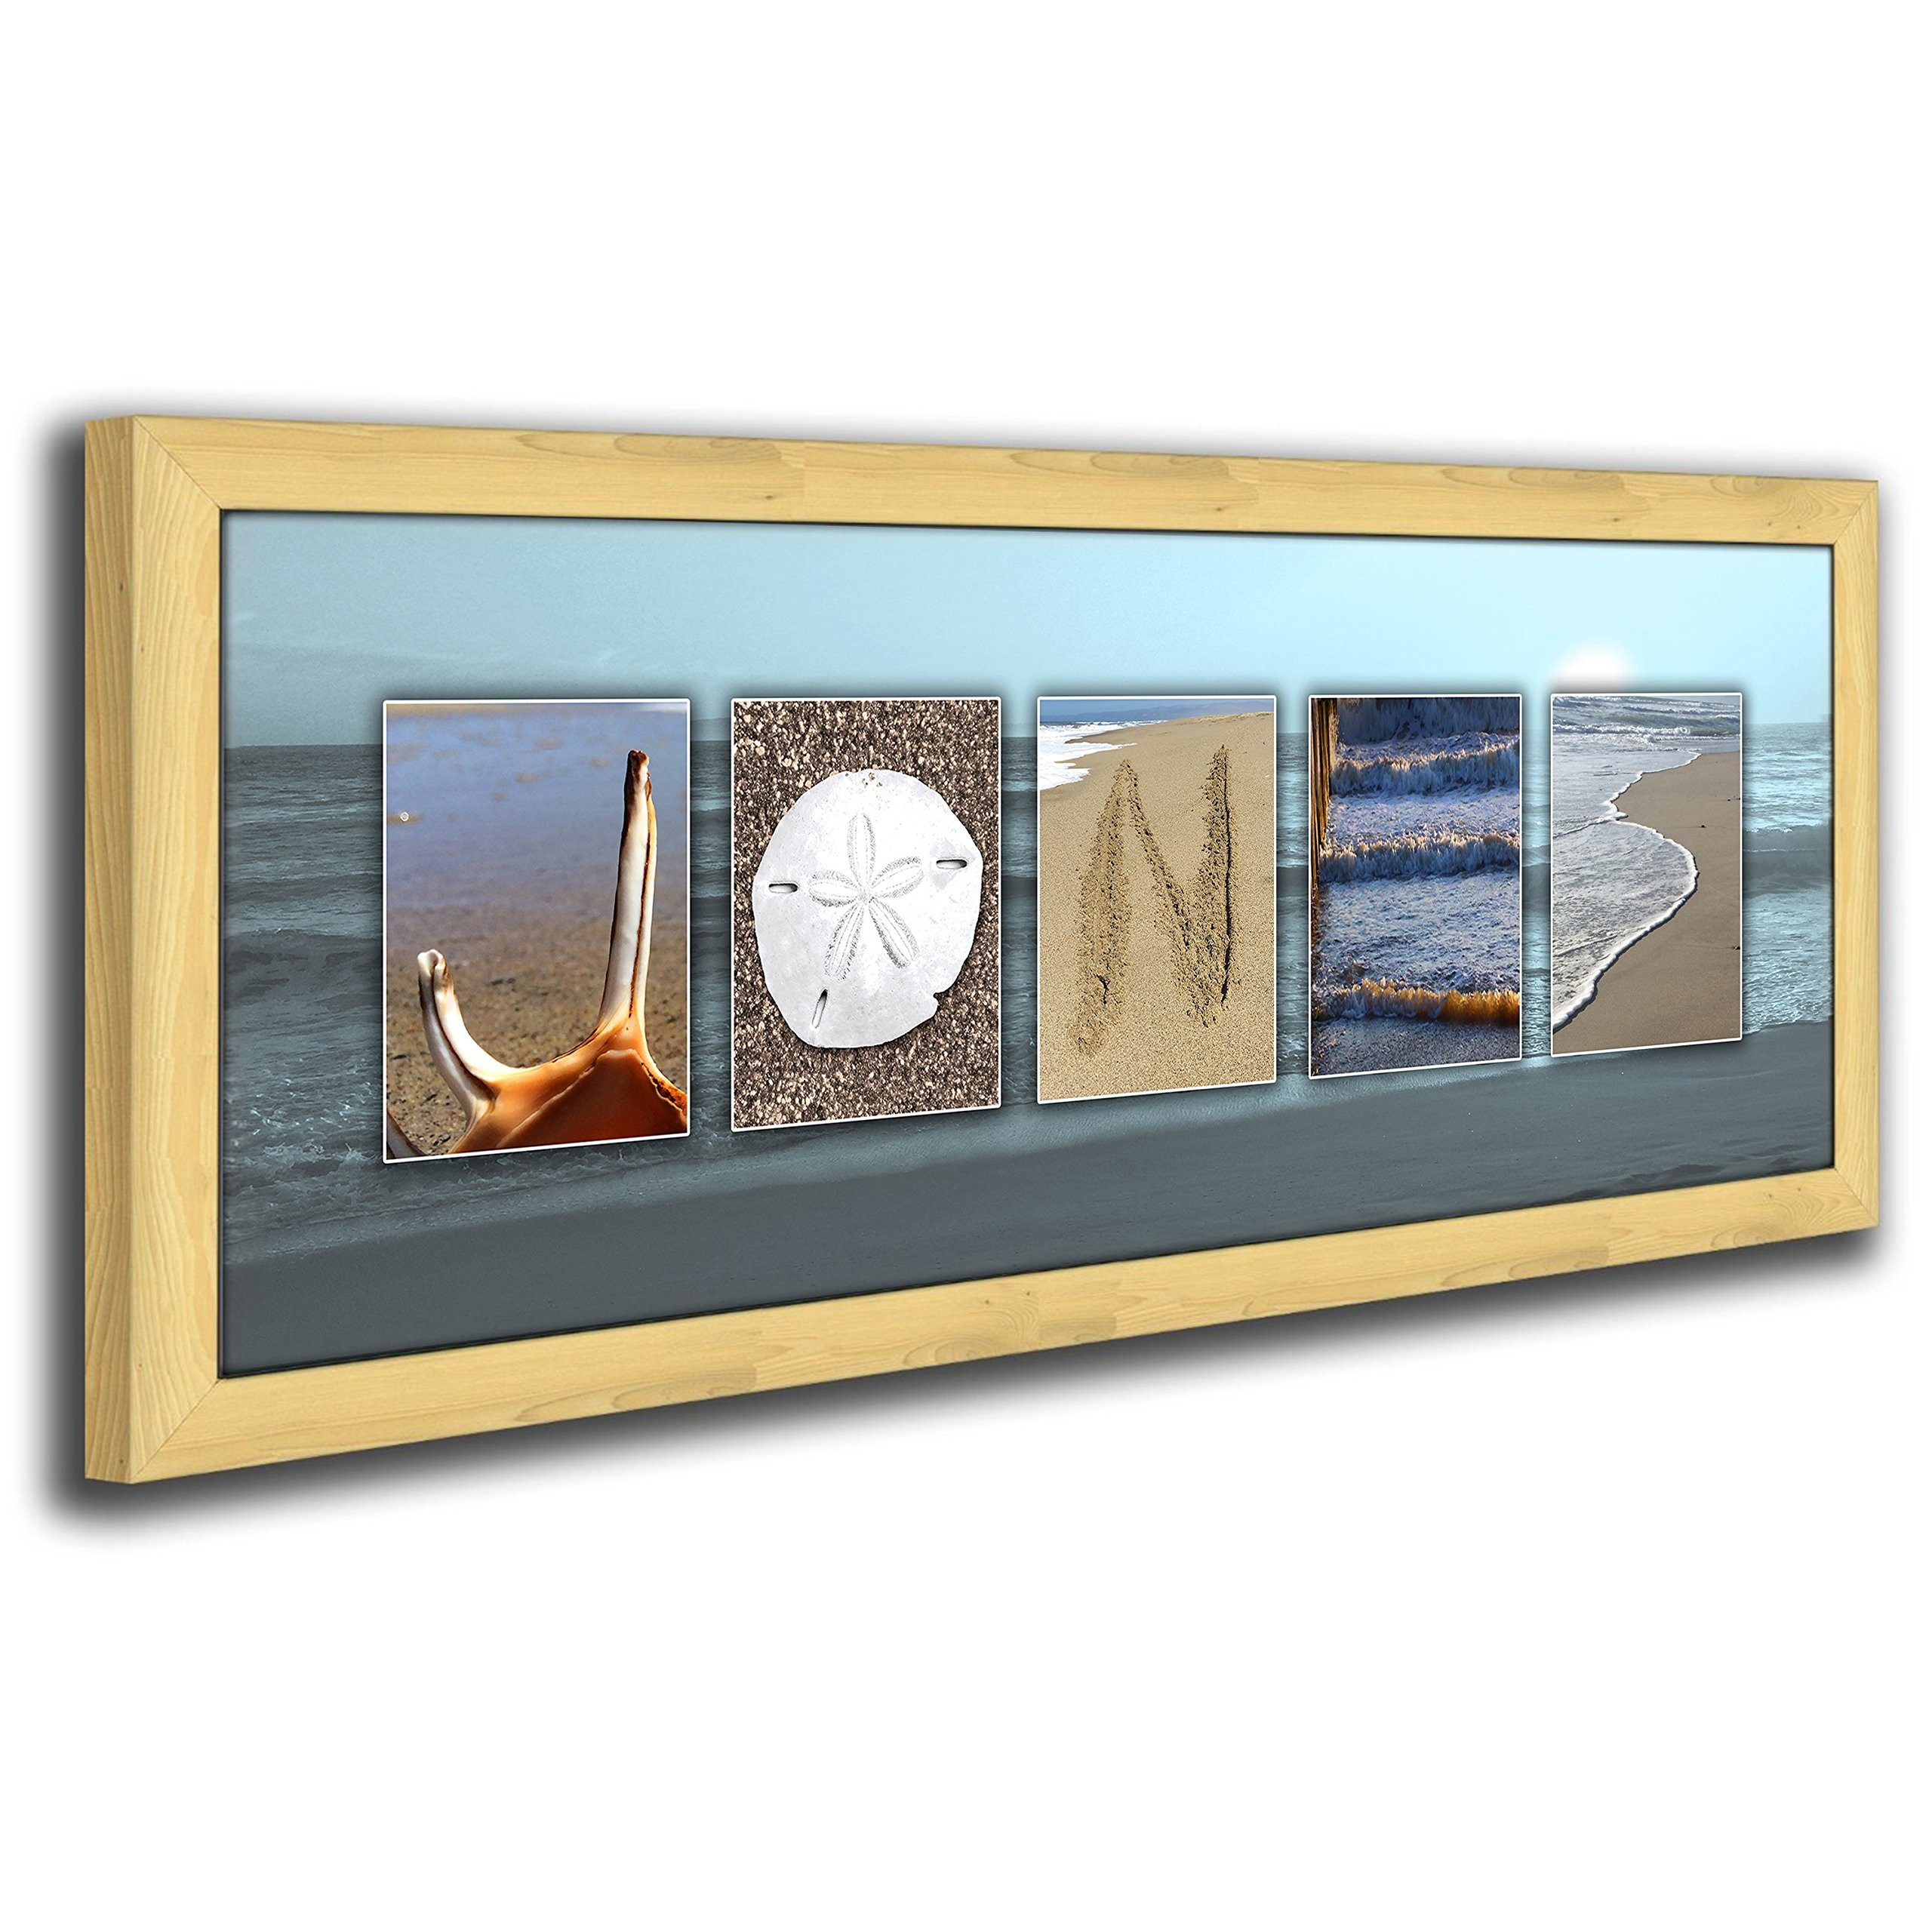 Personalized Coastal, Beach, Nautical Name Art Decor Gift. (Framed Canvas 13.5 x 32.5) by Personal Prints